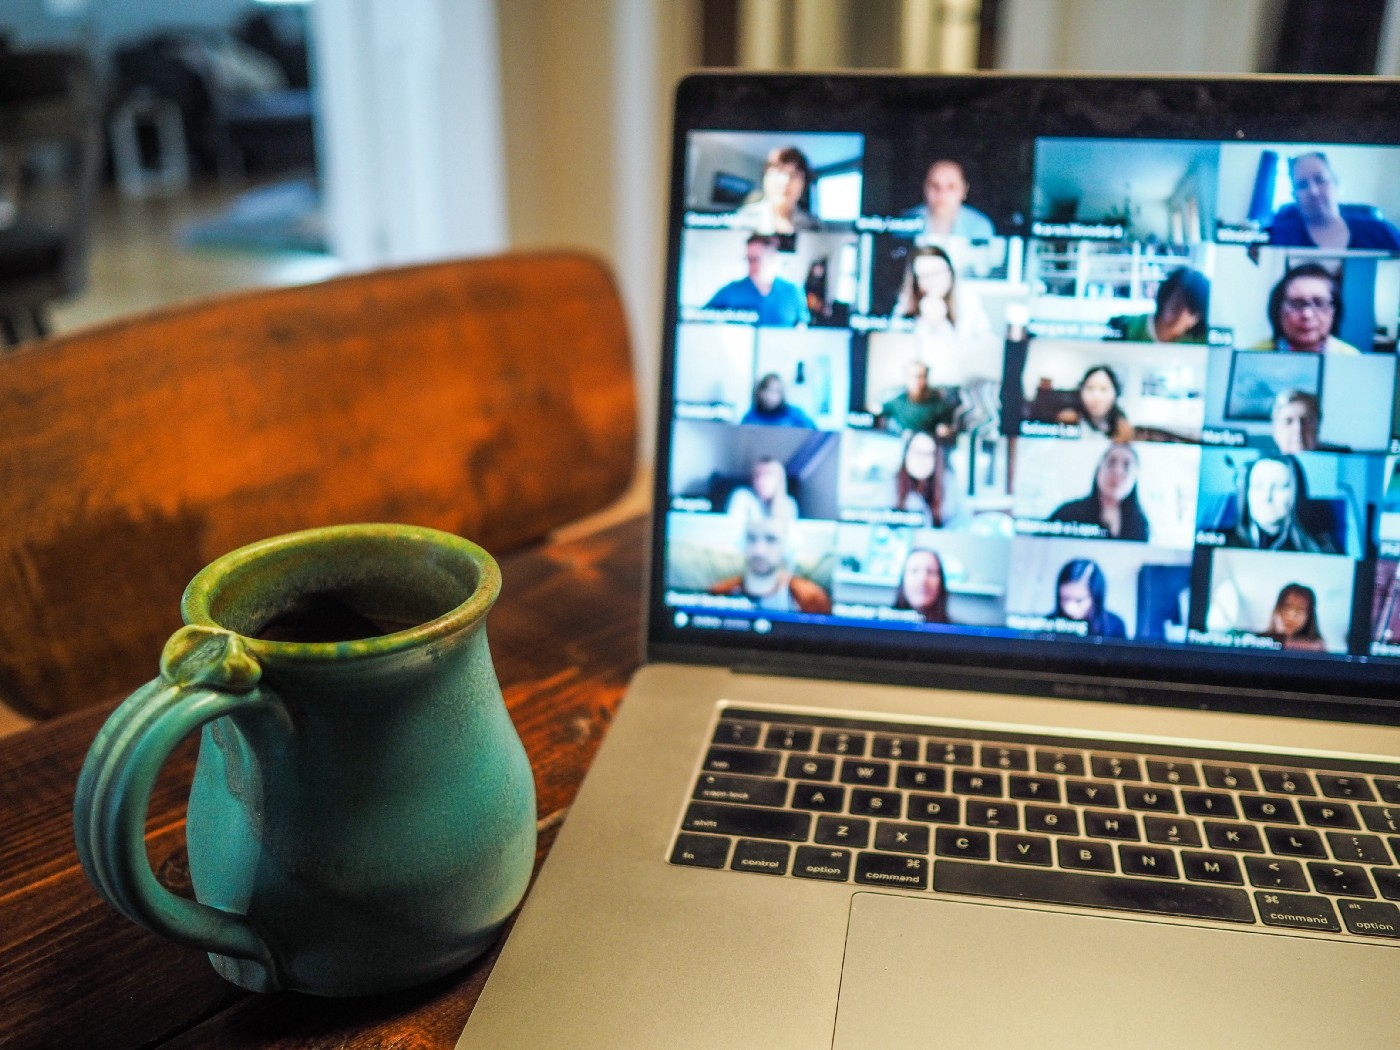 Laptop with a zoom meeting displayed. A mug of tea sits beside it.